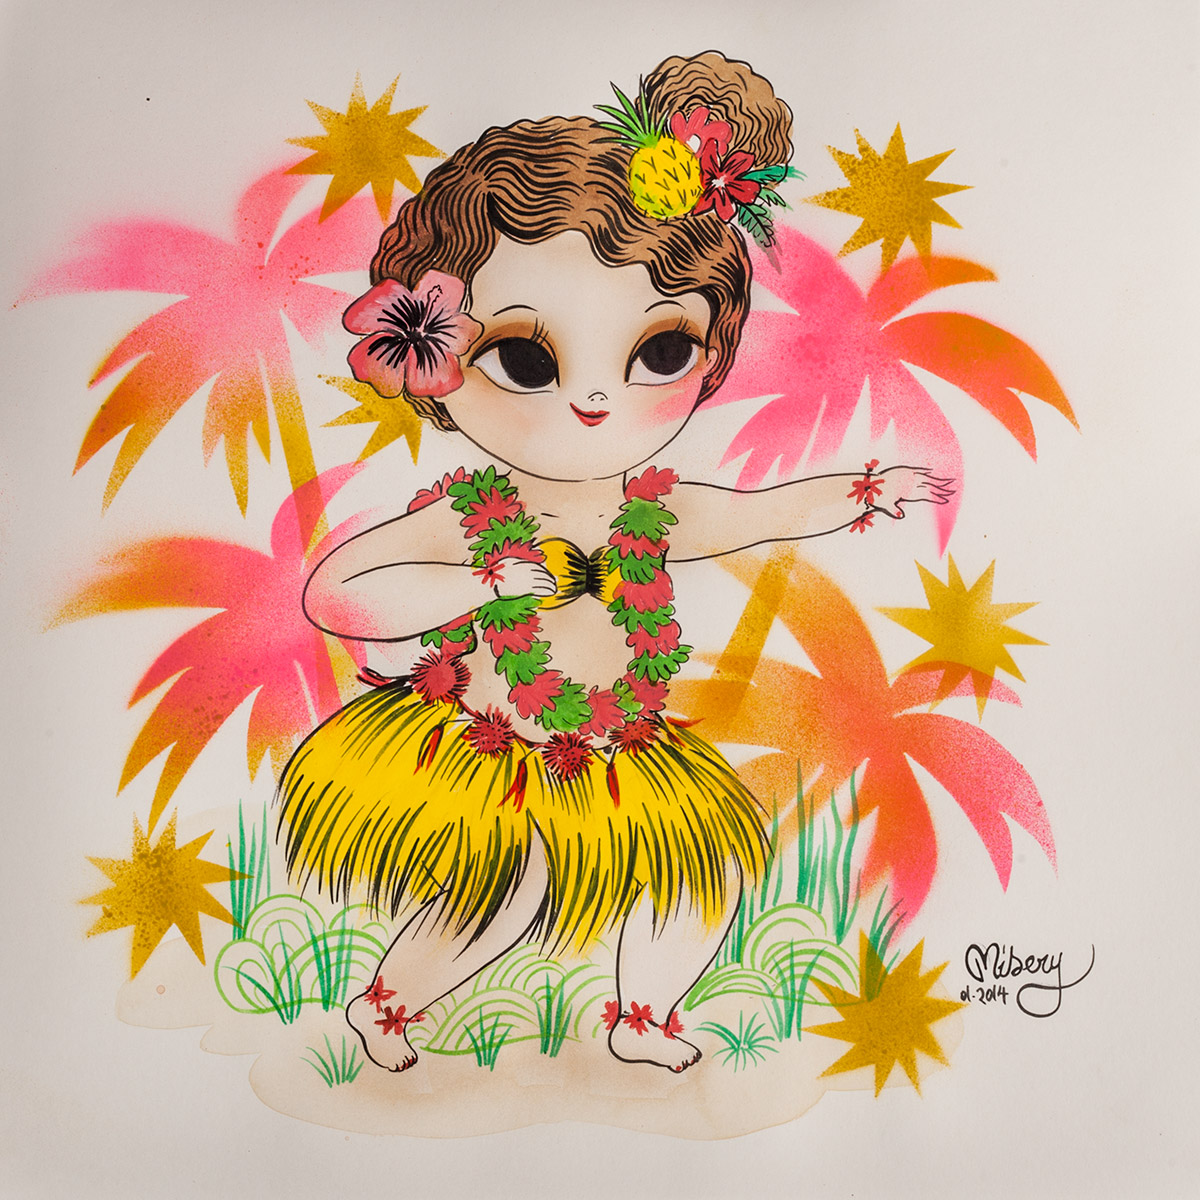 Misery-NeonHulaHips.jpg